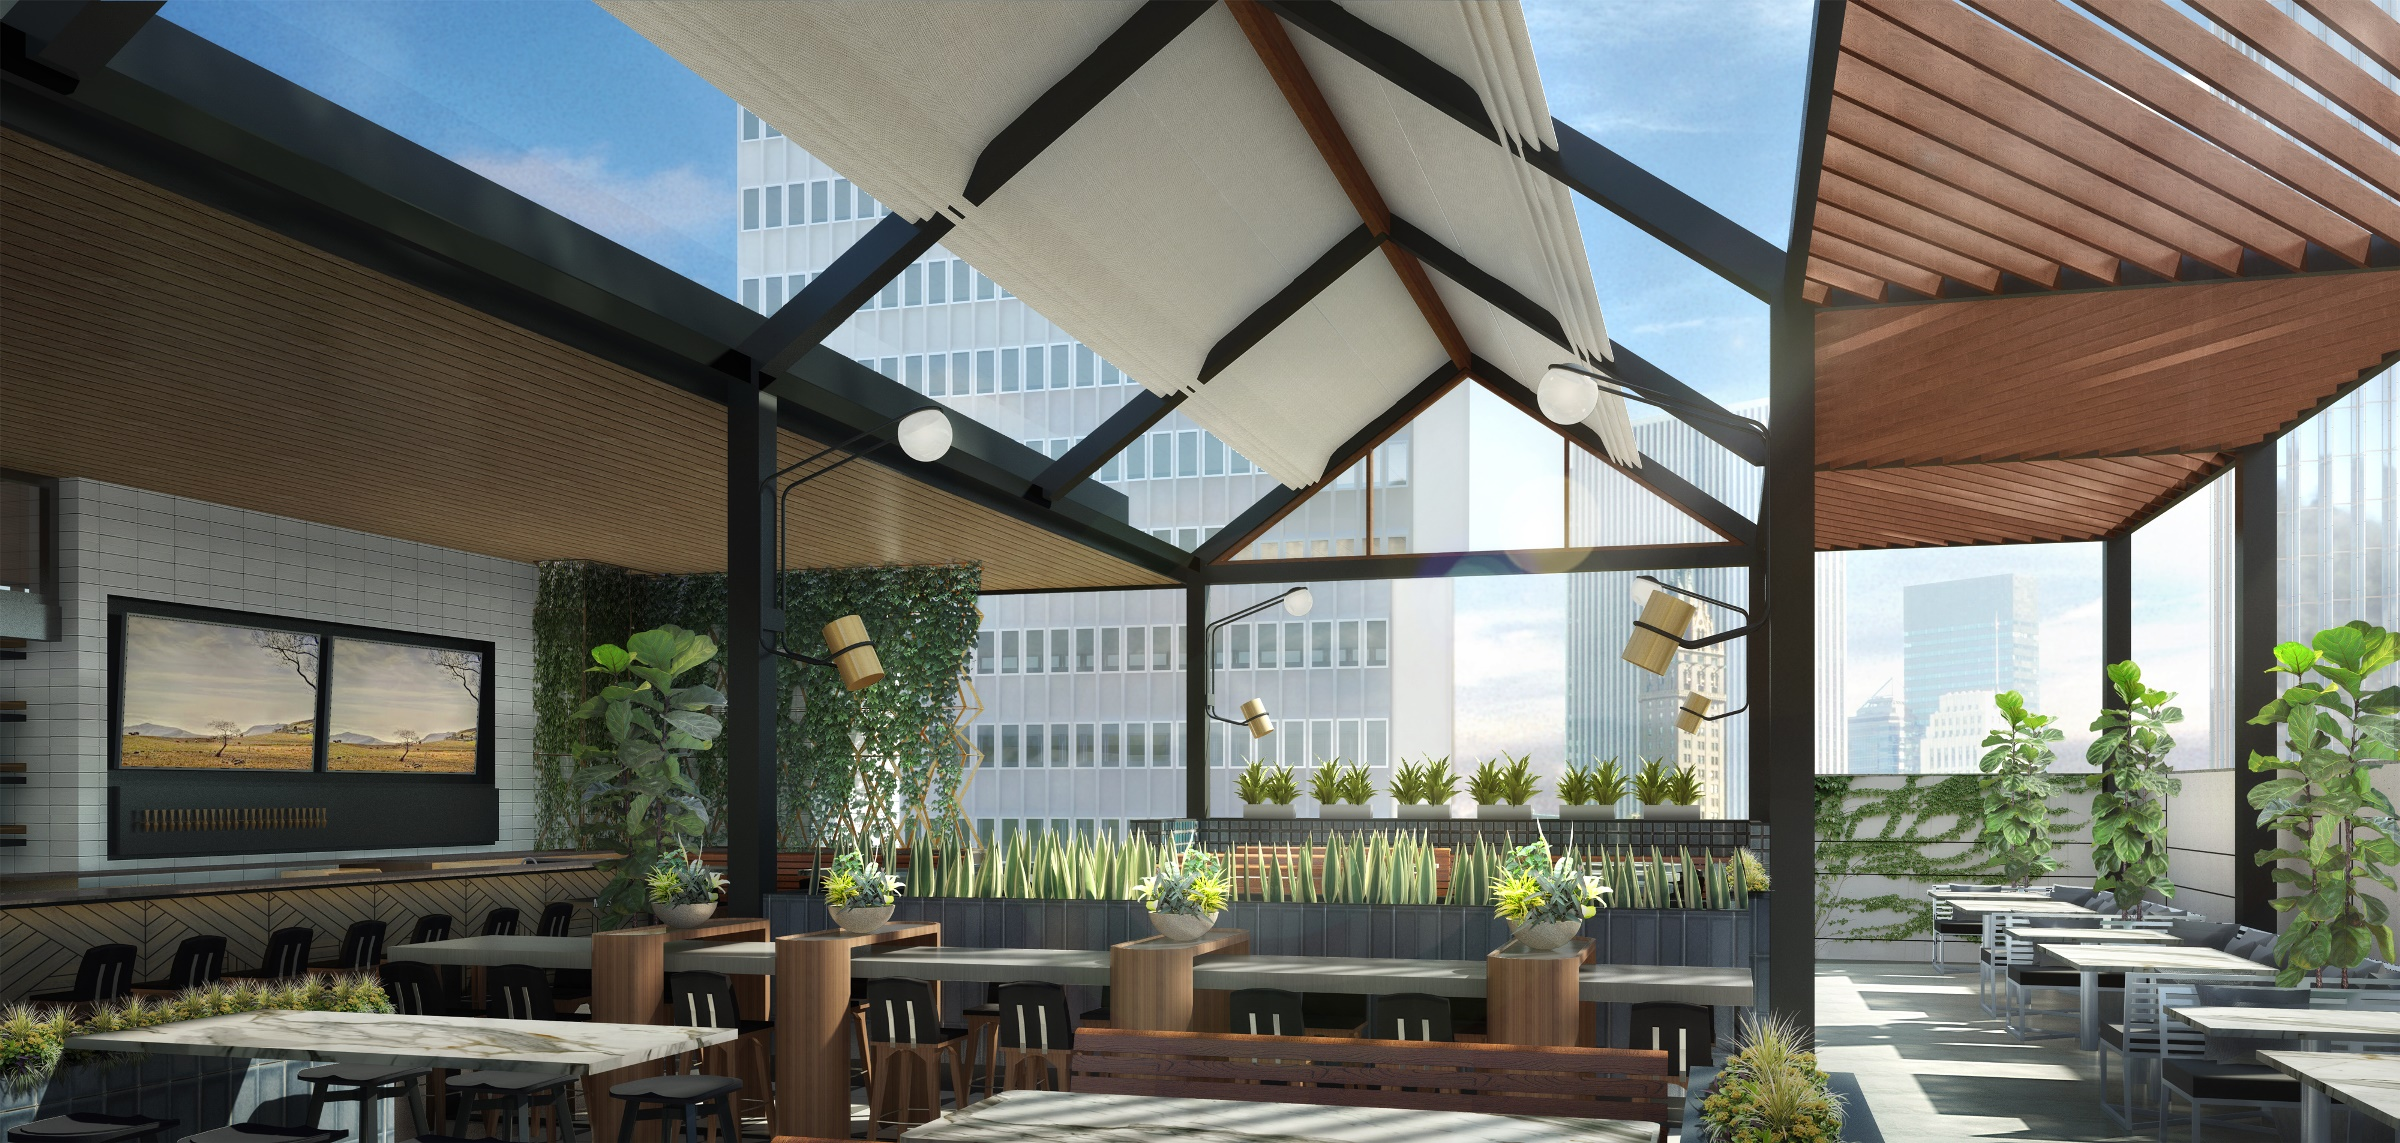 the new earls at the pru will have a swanky rooftop eater boston